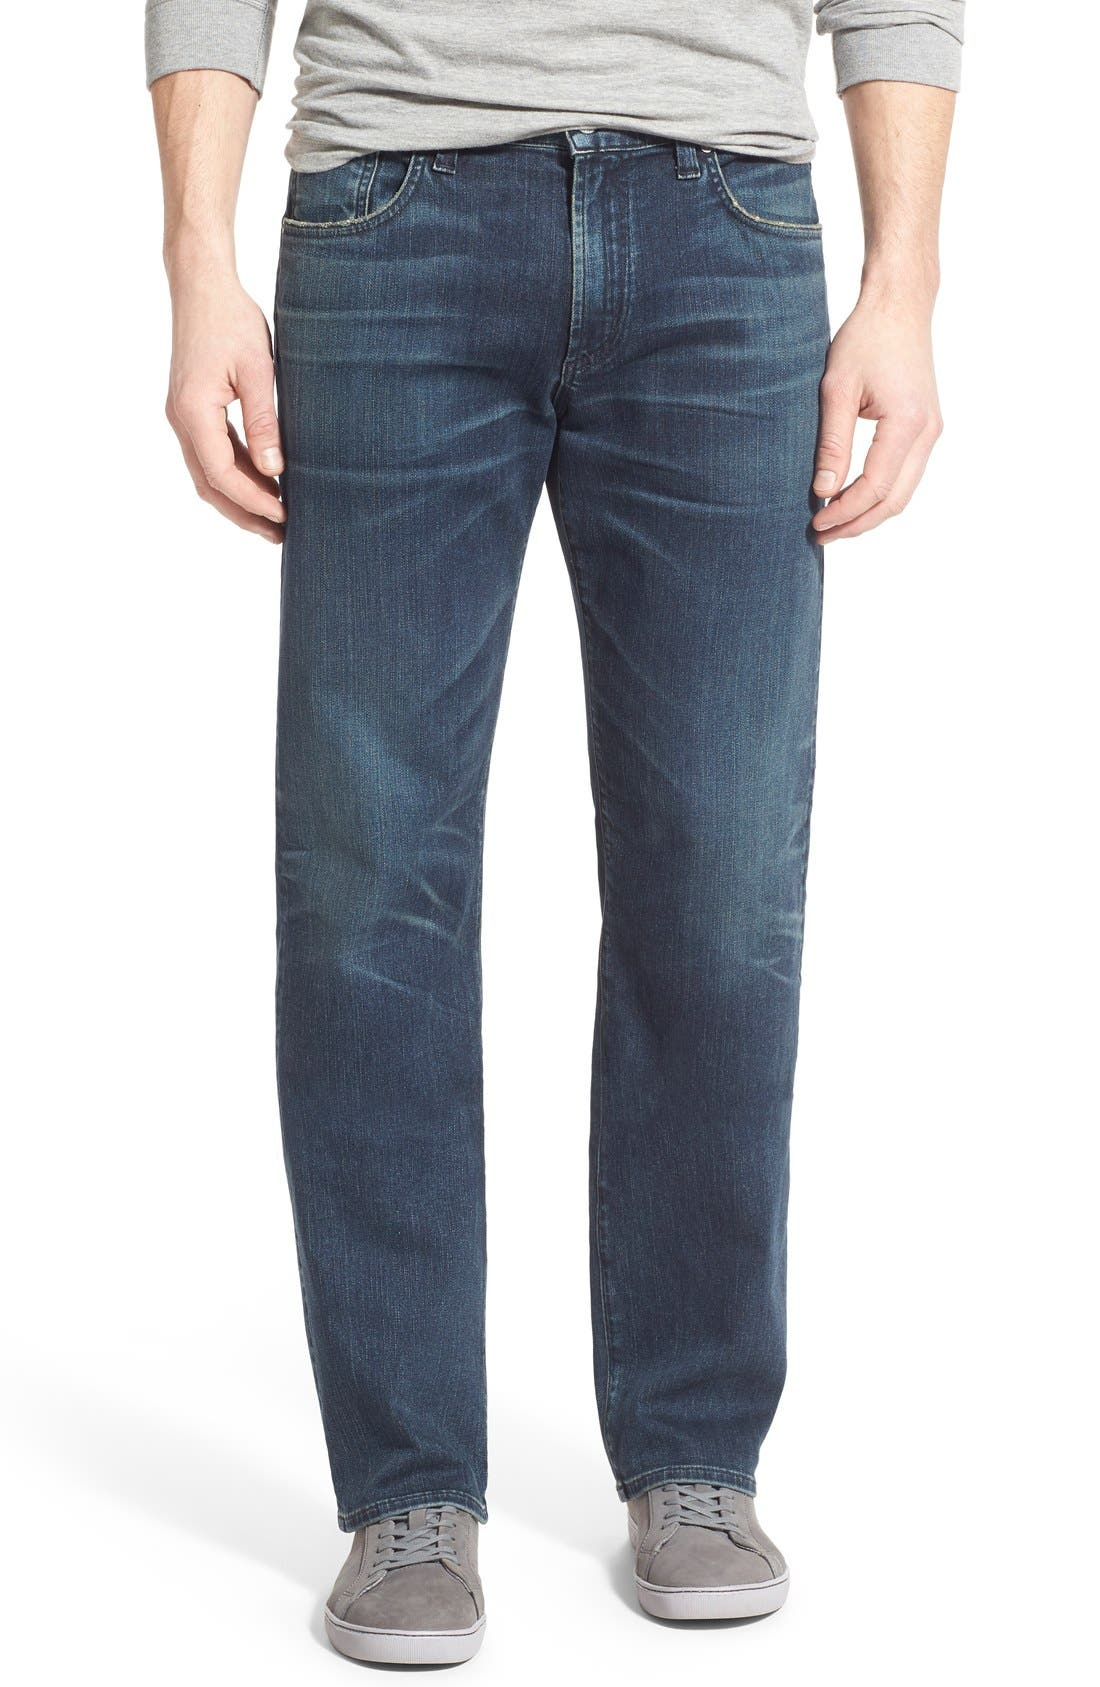 PERFORM - Sid Straight Leg Jeans,                         Main,                         color, Norland